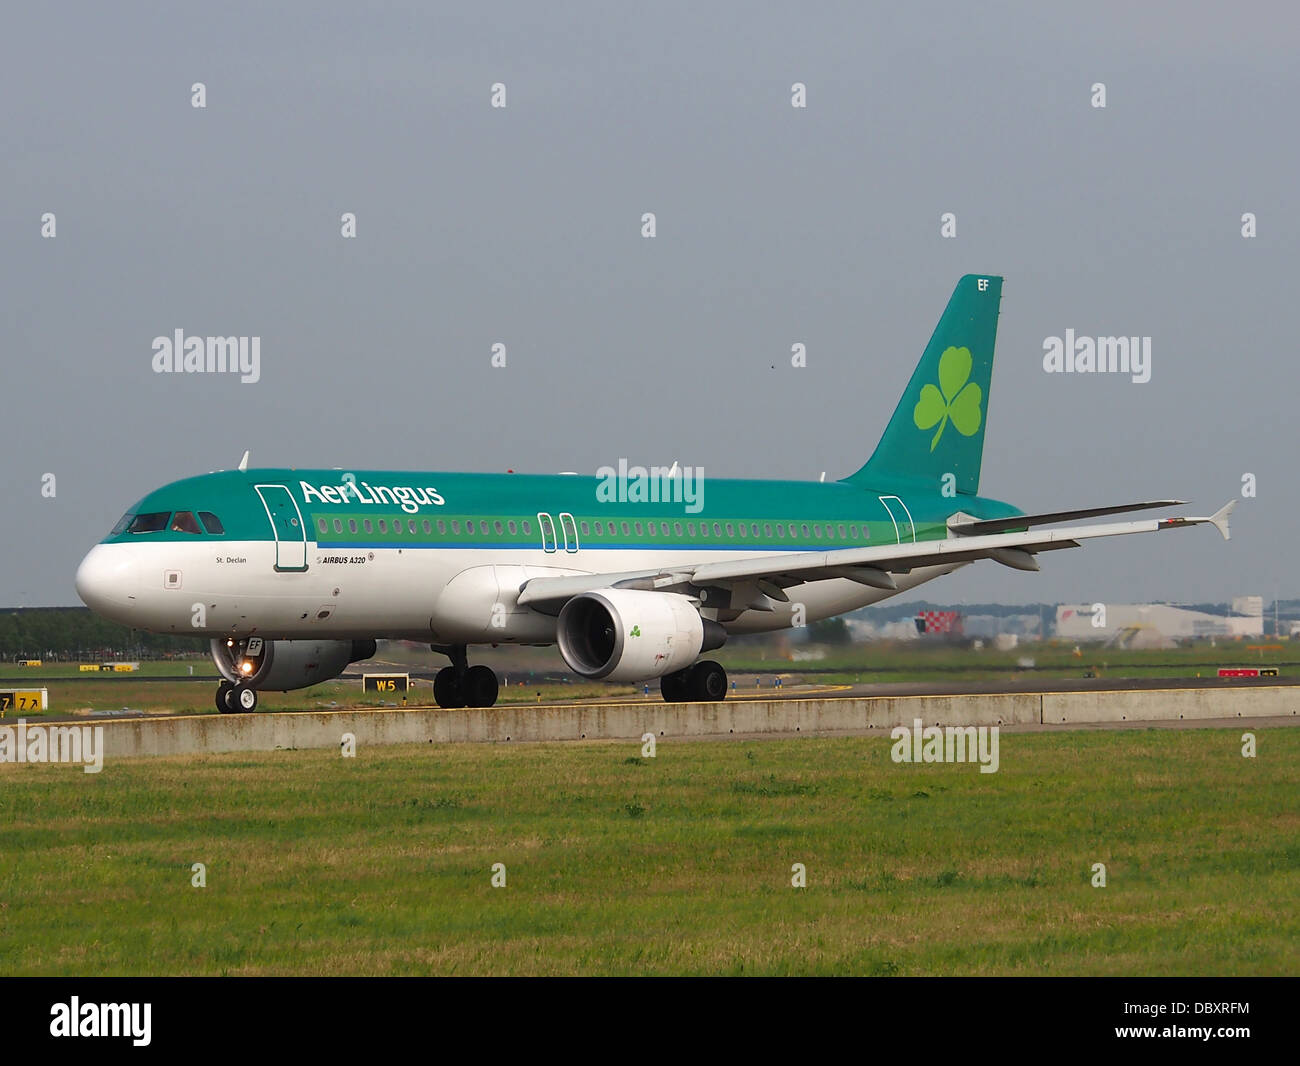 EI-DEF A320-214 Aer Lingus taxiing 13july2013 -001 - Stock Image